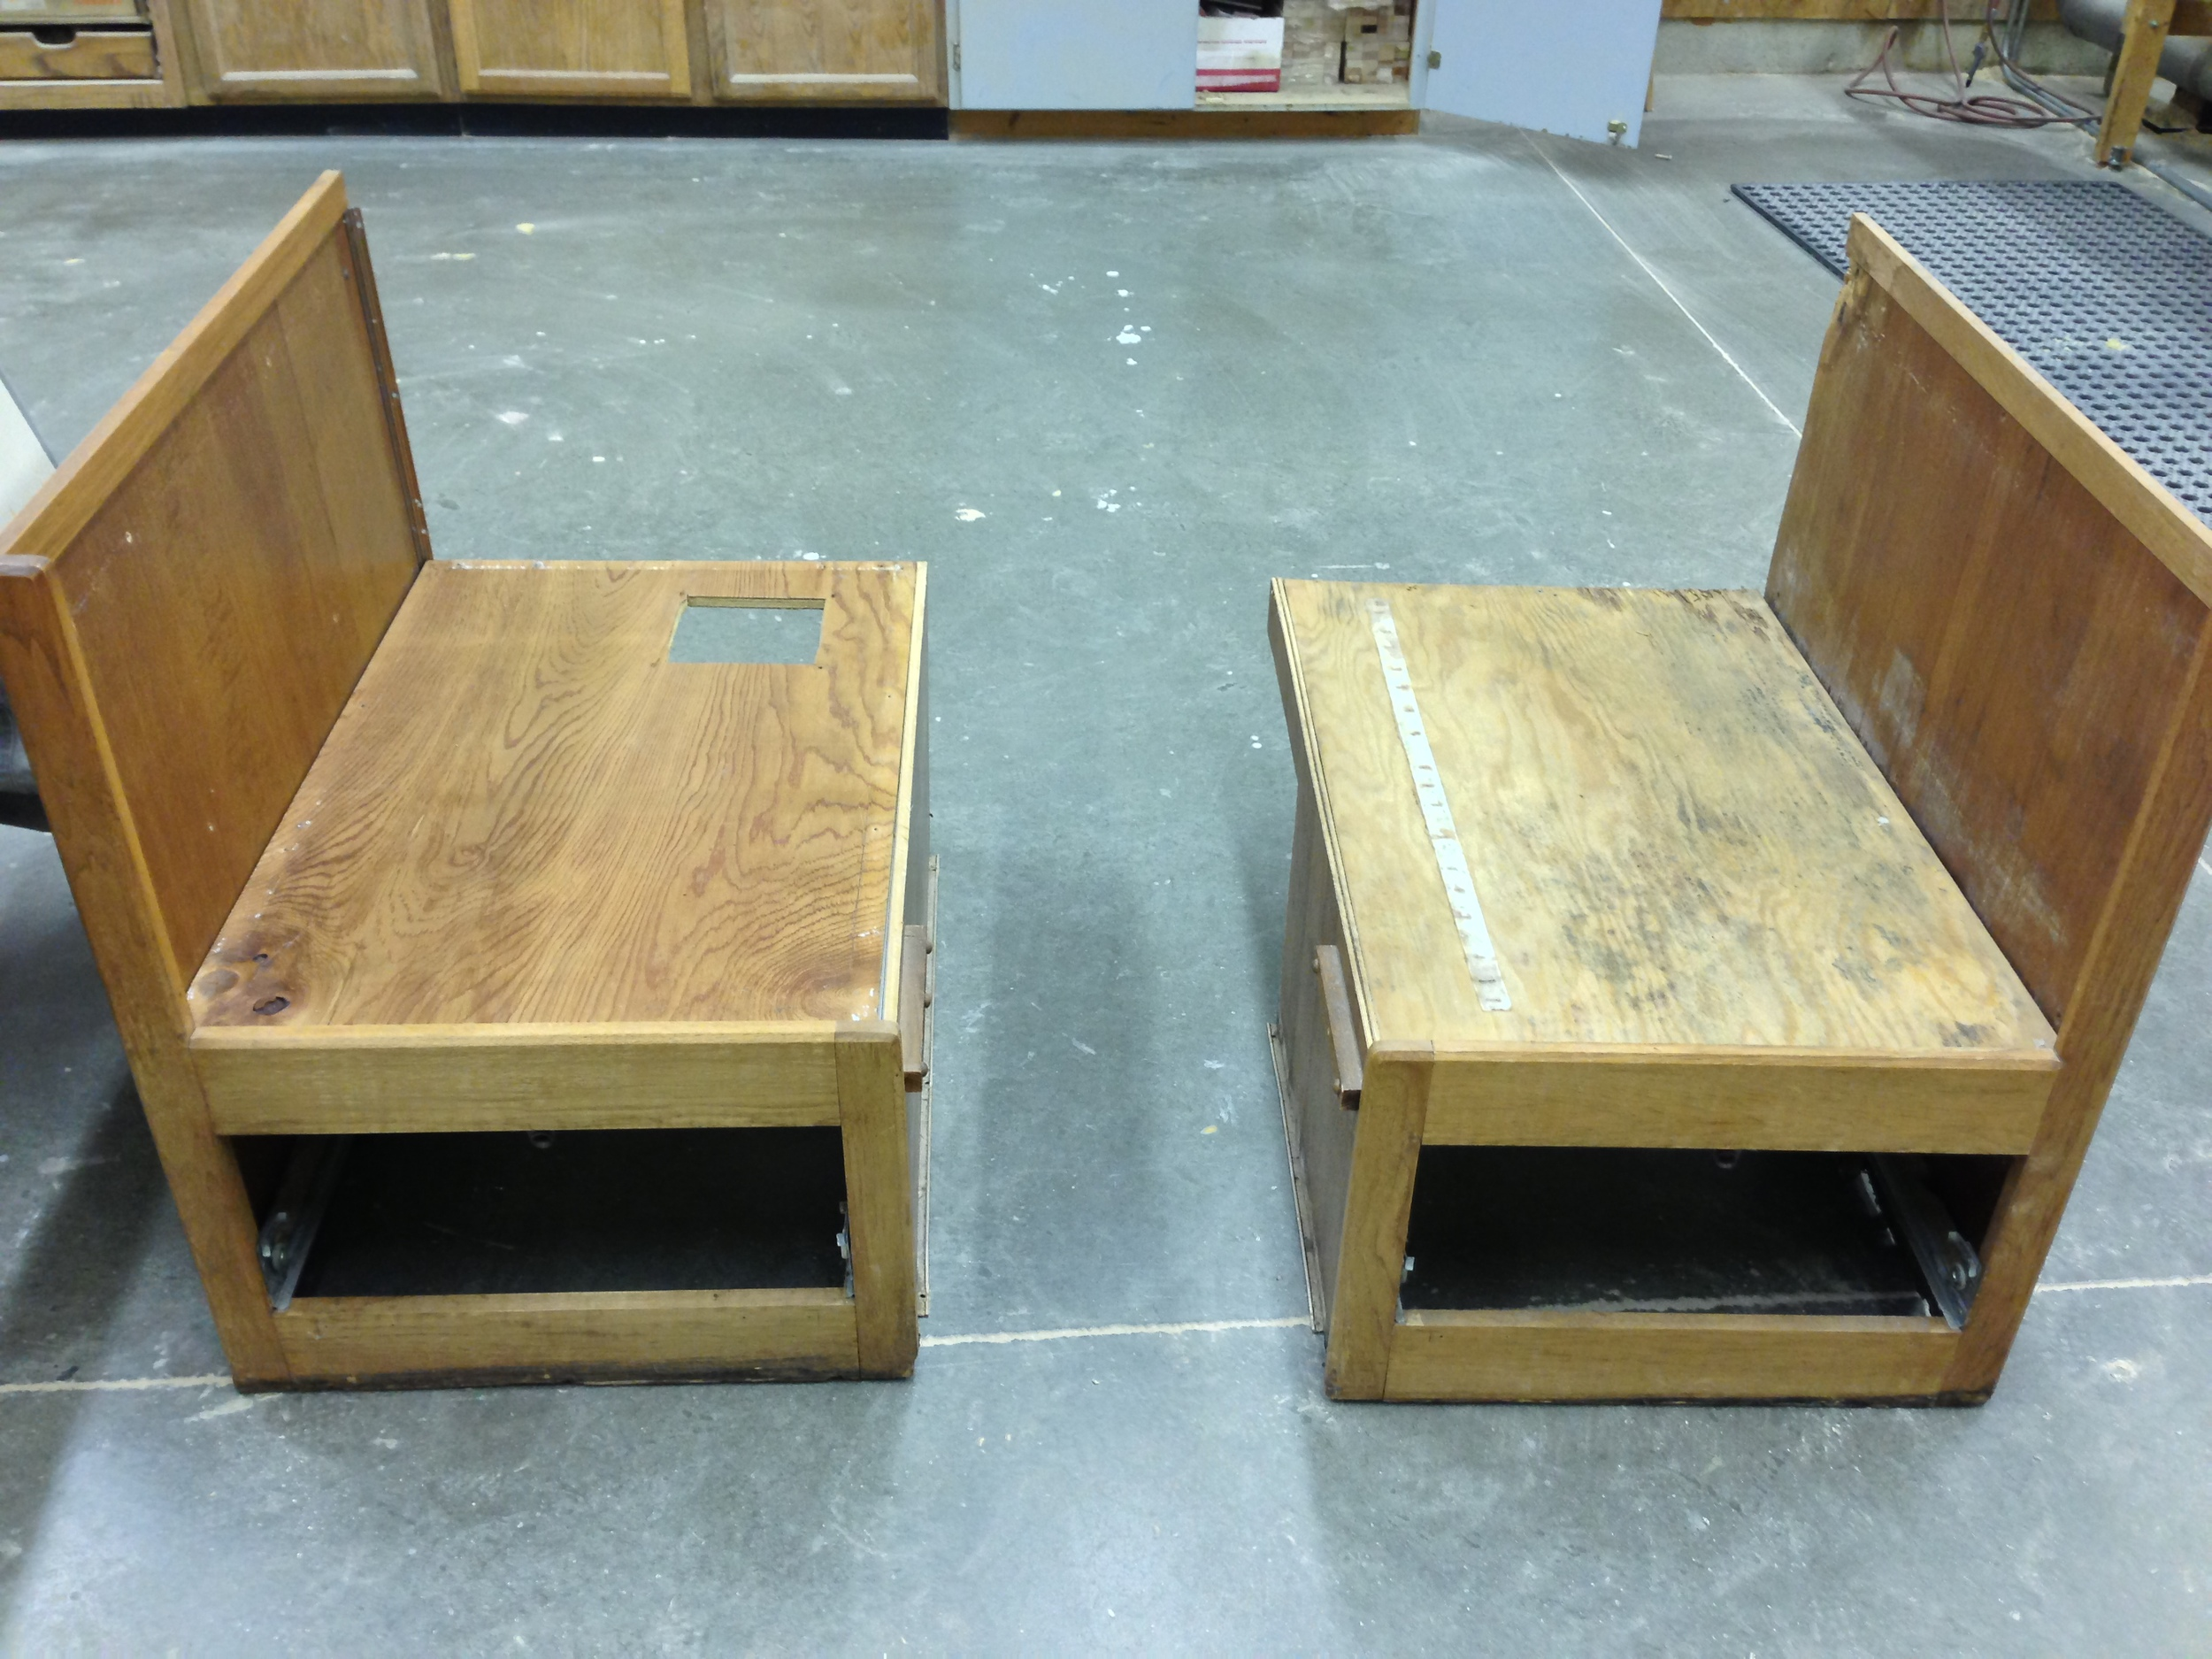 The Dinette benches removed and prepared for restoration